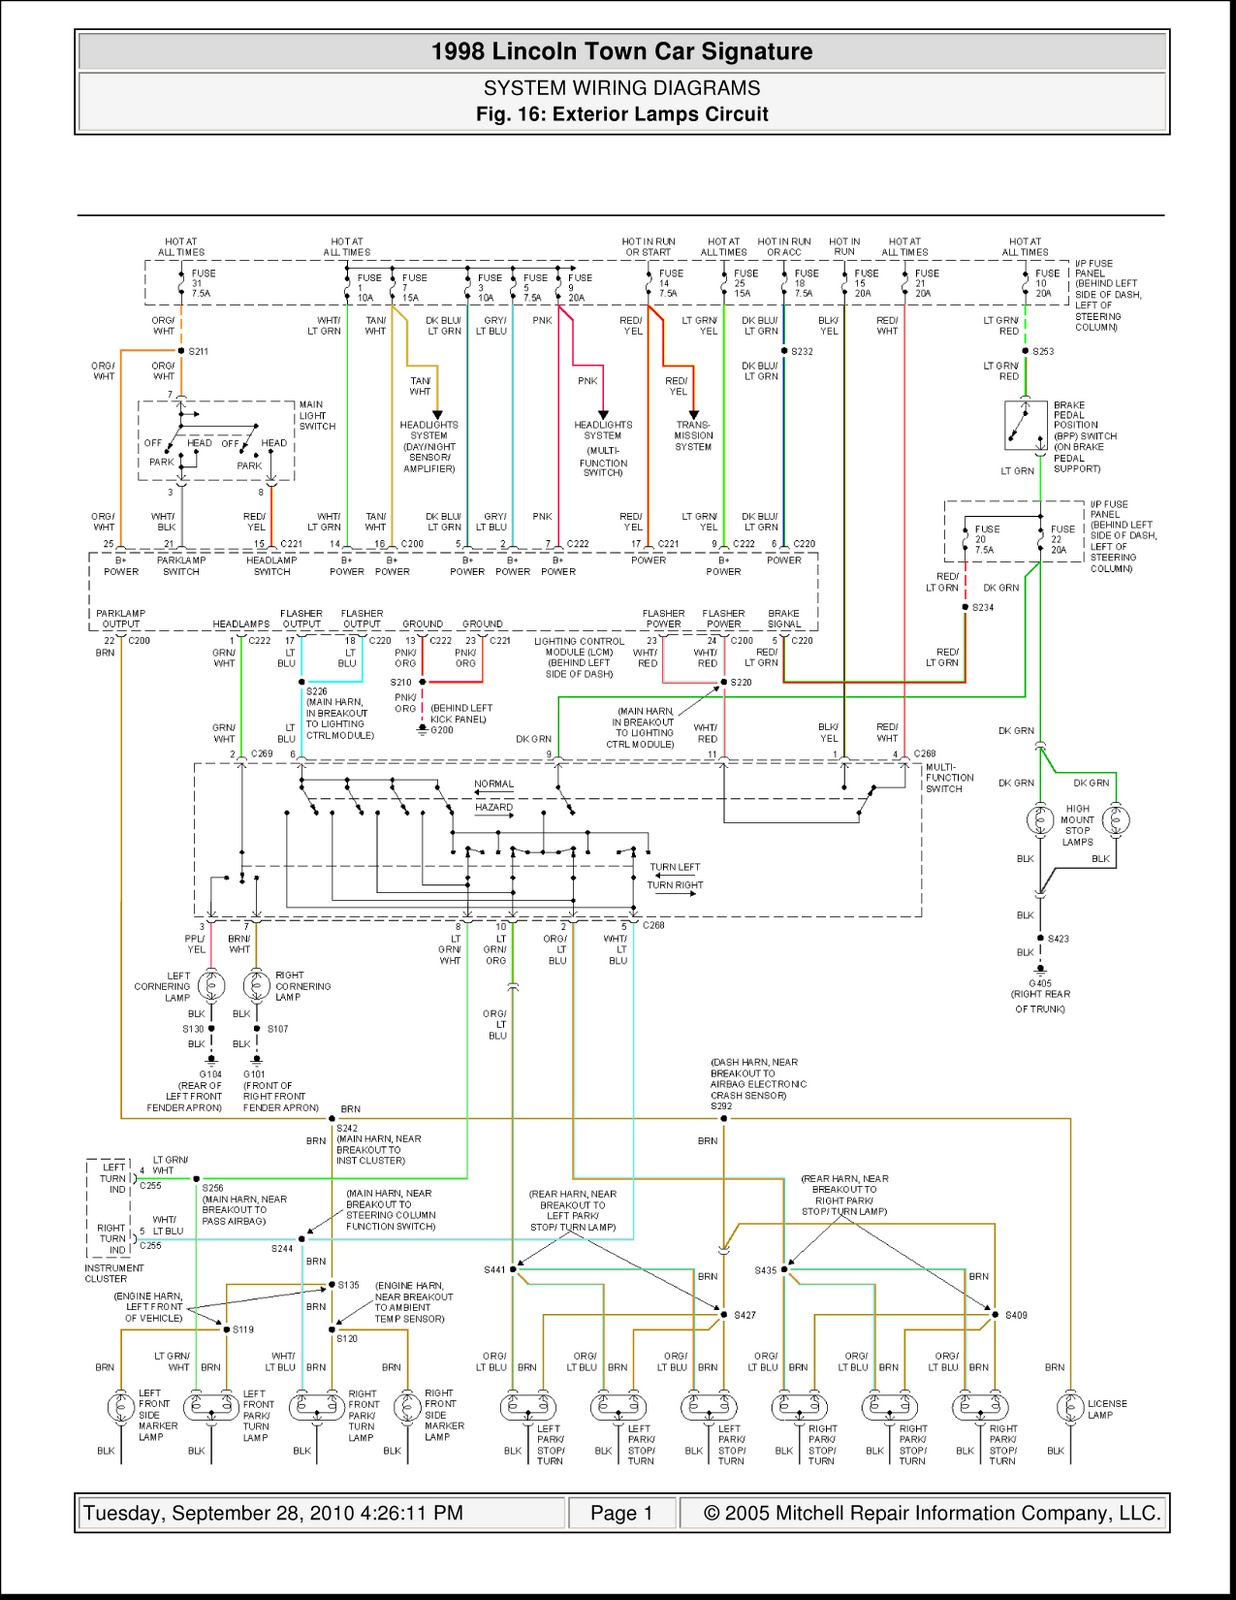 cars wiring diagram explore wiring diagram on the net • wiring diagrams automotive 1993 lincoln town car 2003 car wiring diagram website car wiring diagrams publications